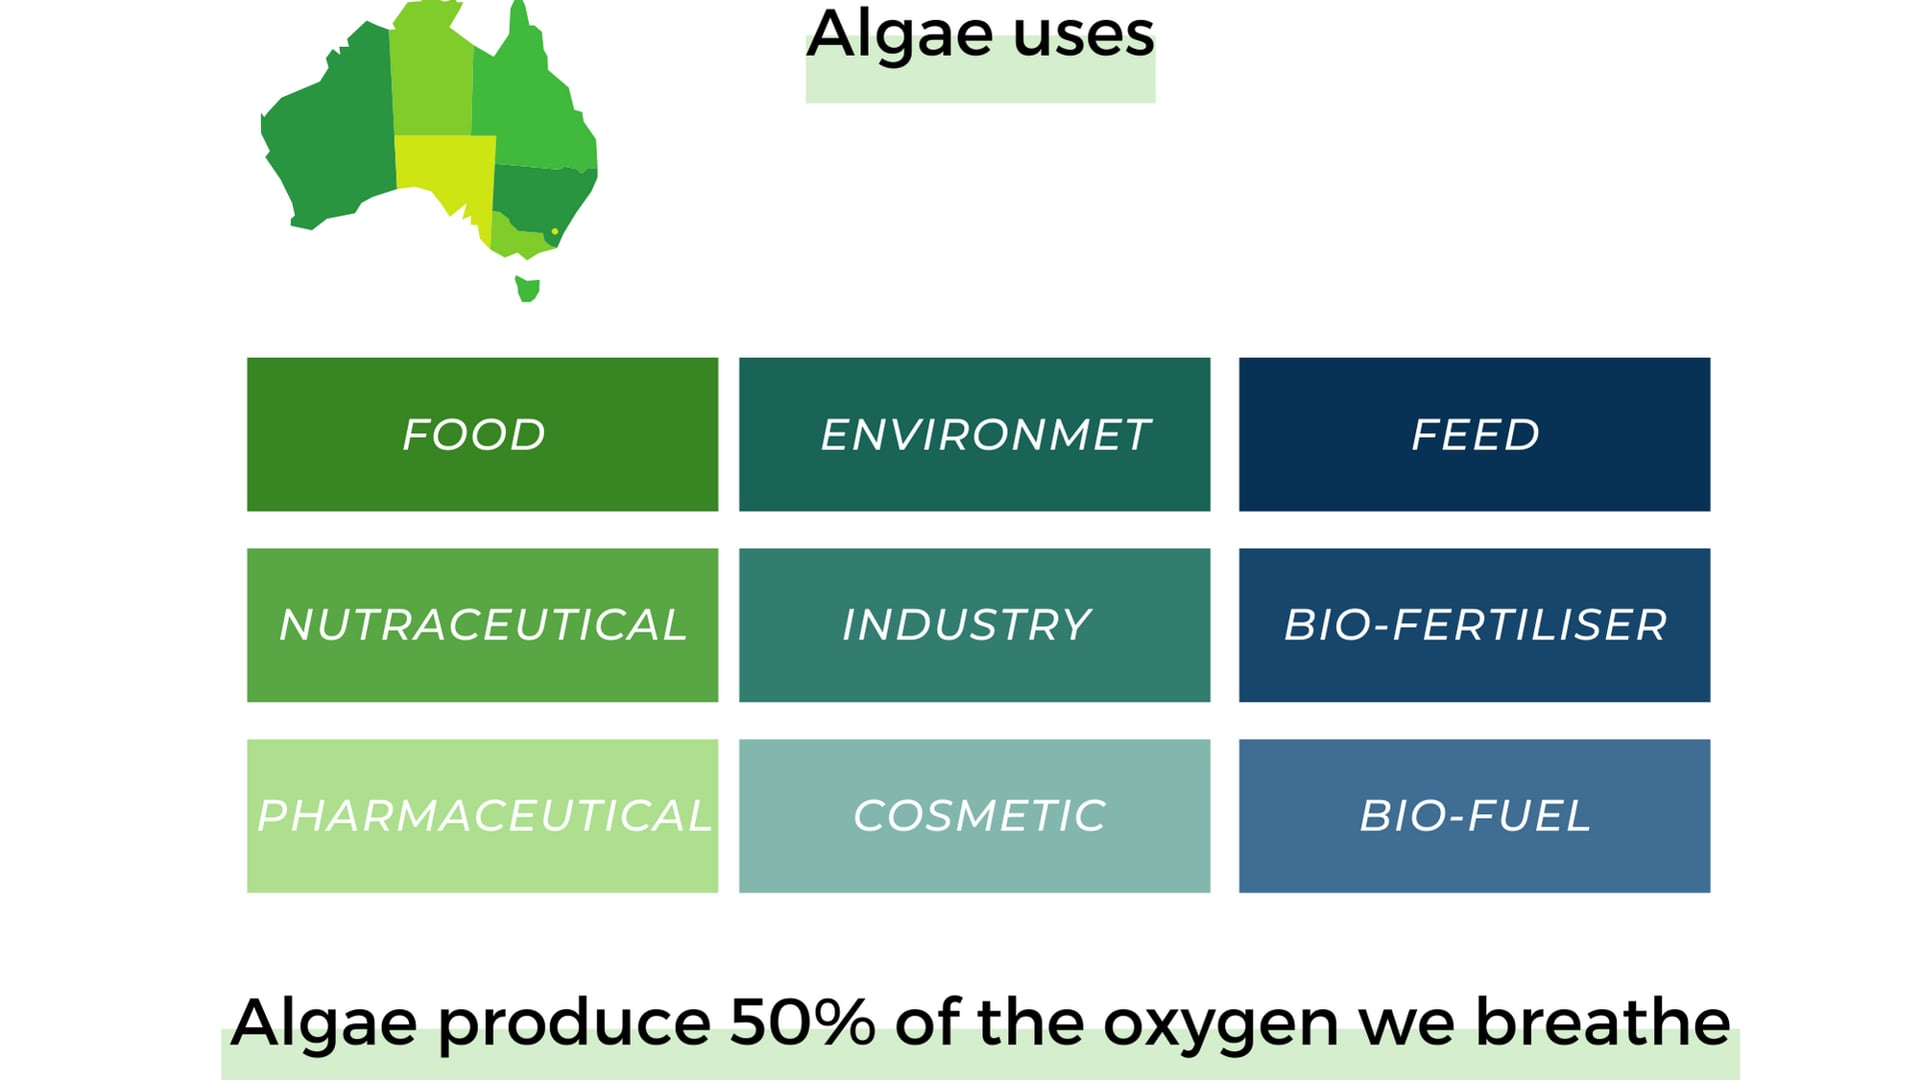 Algae will play an important role in our future